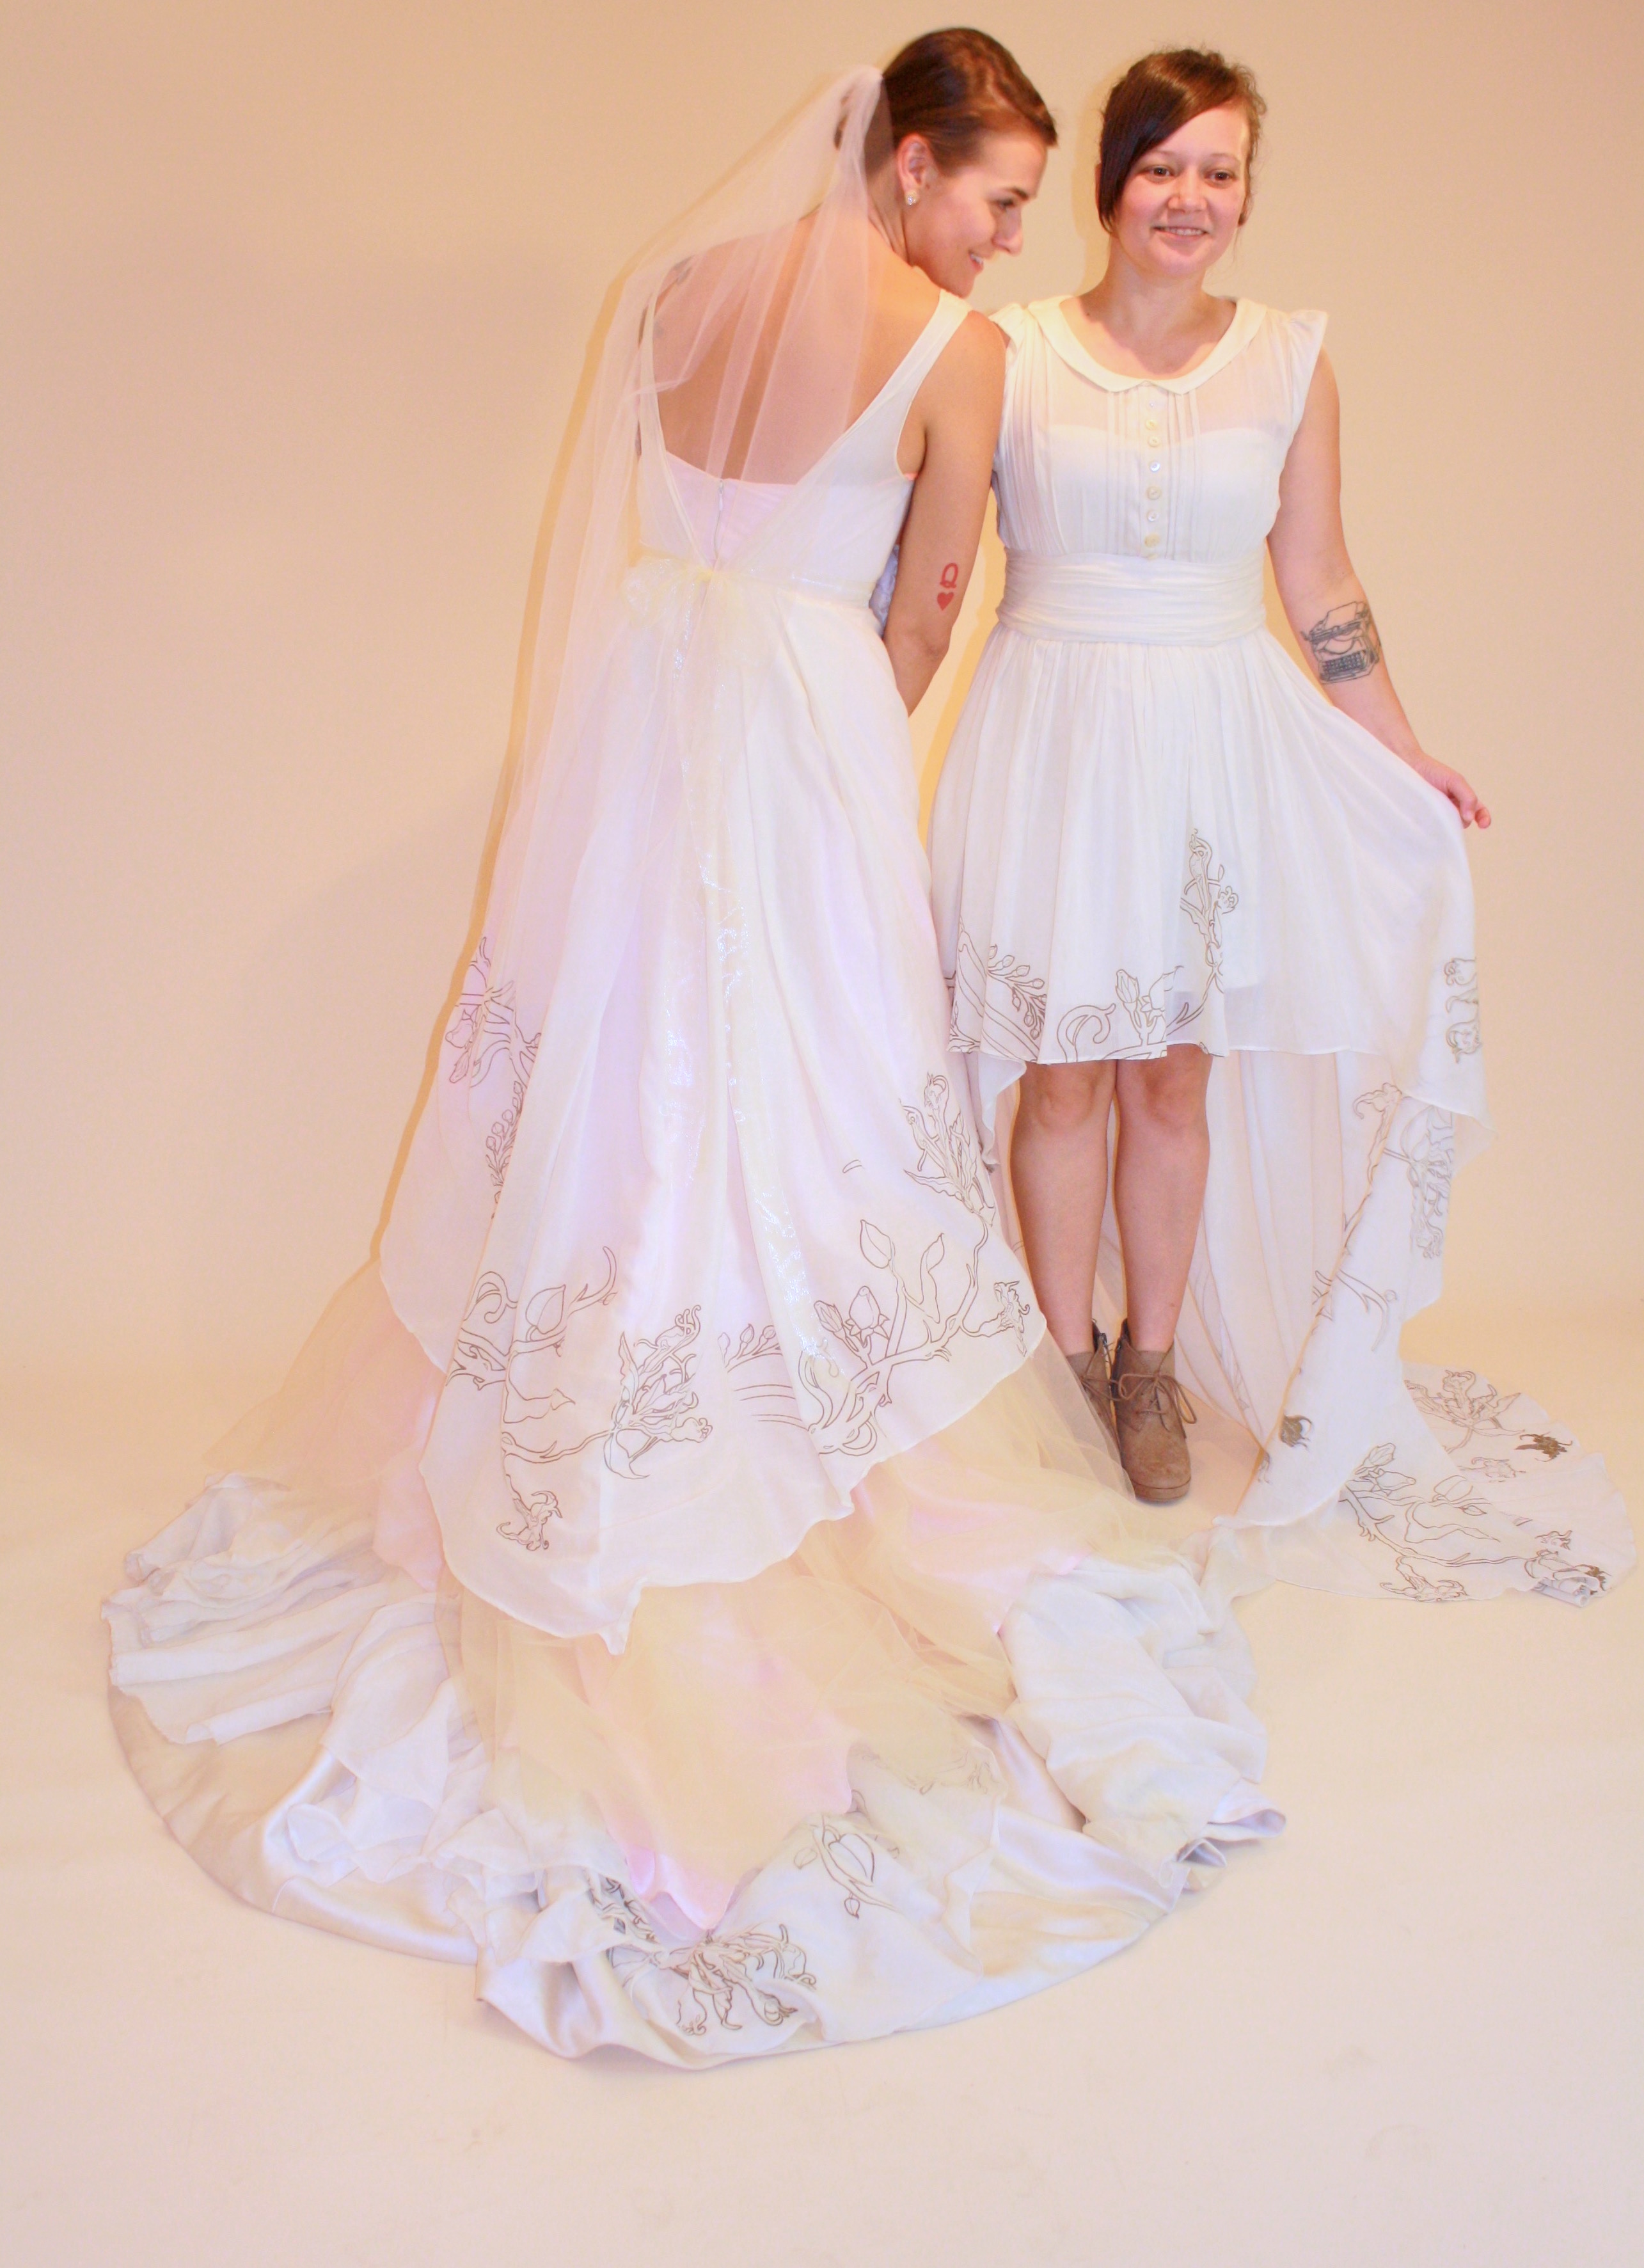 Couple in wedding dresses